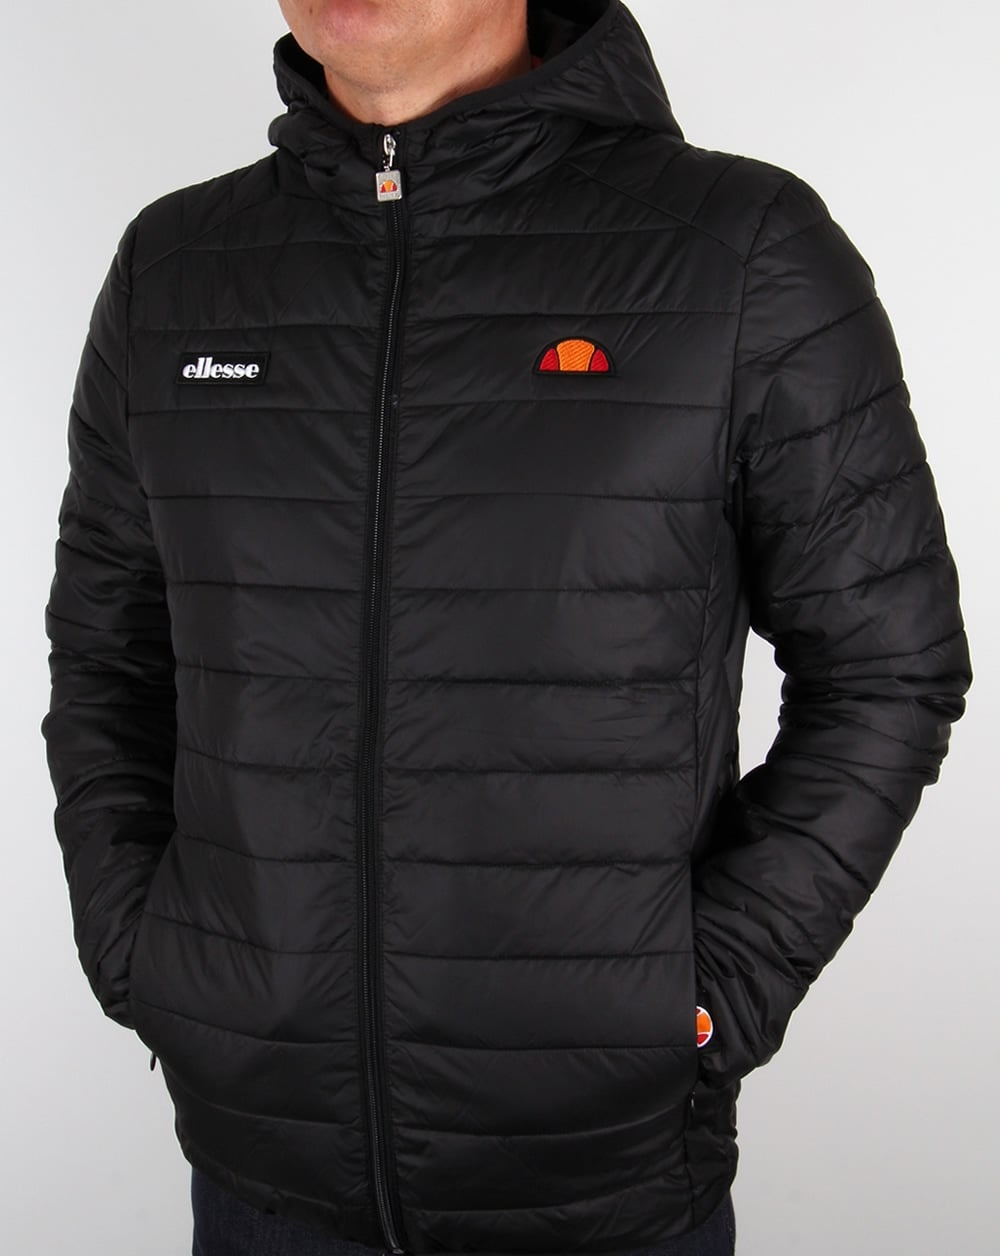 ellesse lombardy jacket black bubble hooded puffer ski coat mens